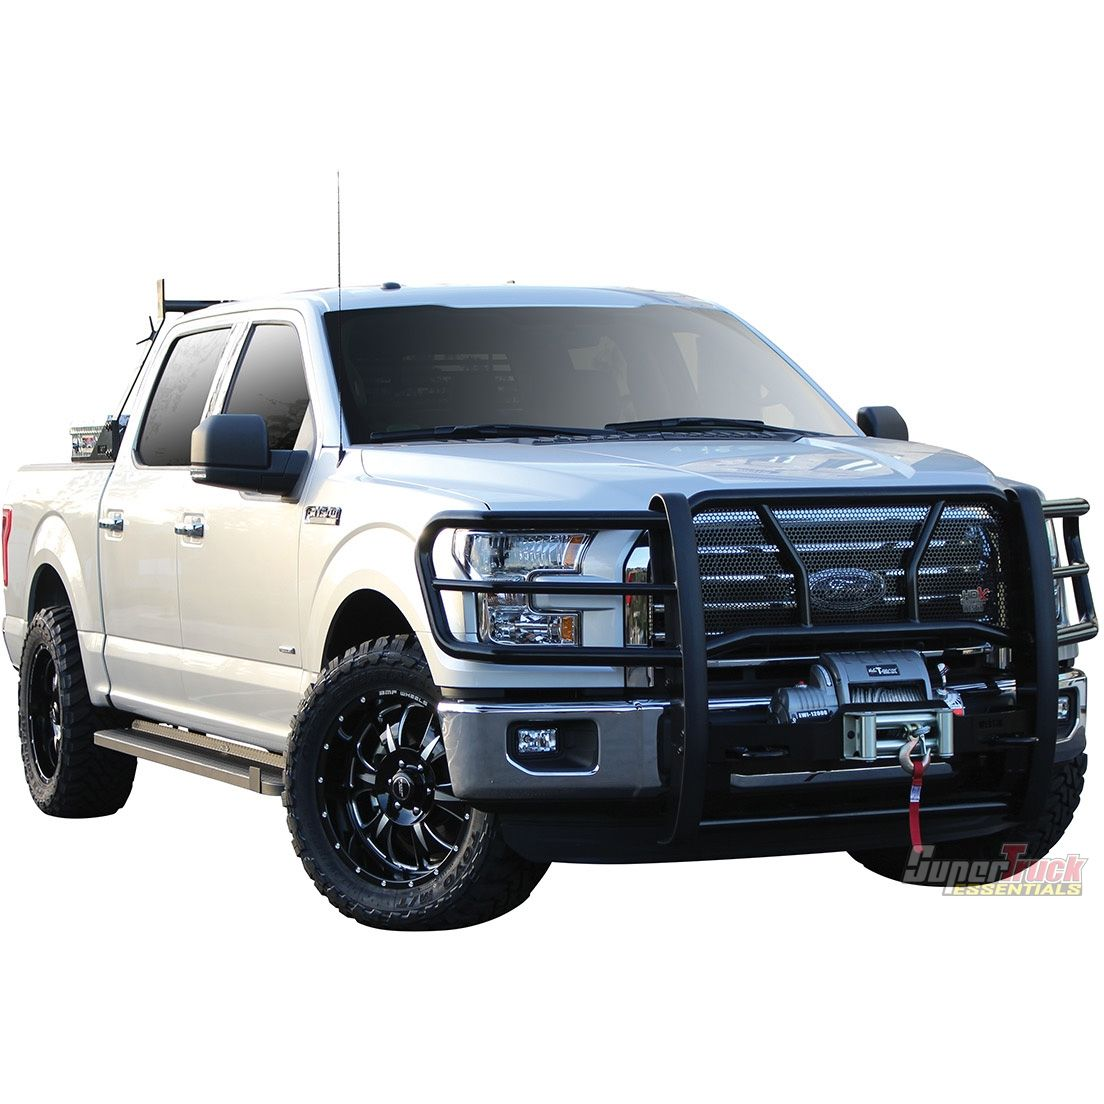 Westin Automotive Hdx Winch Mount Grille Guard For 2015 Ford F 150 Supertruck Ford F150 Grilles Westin